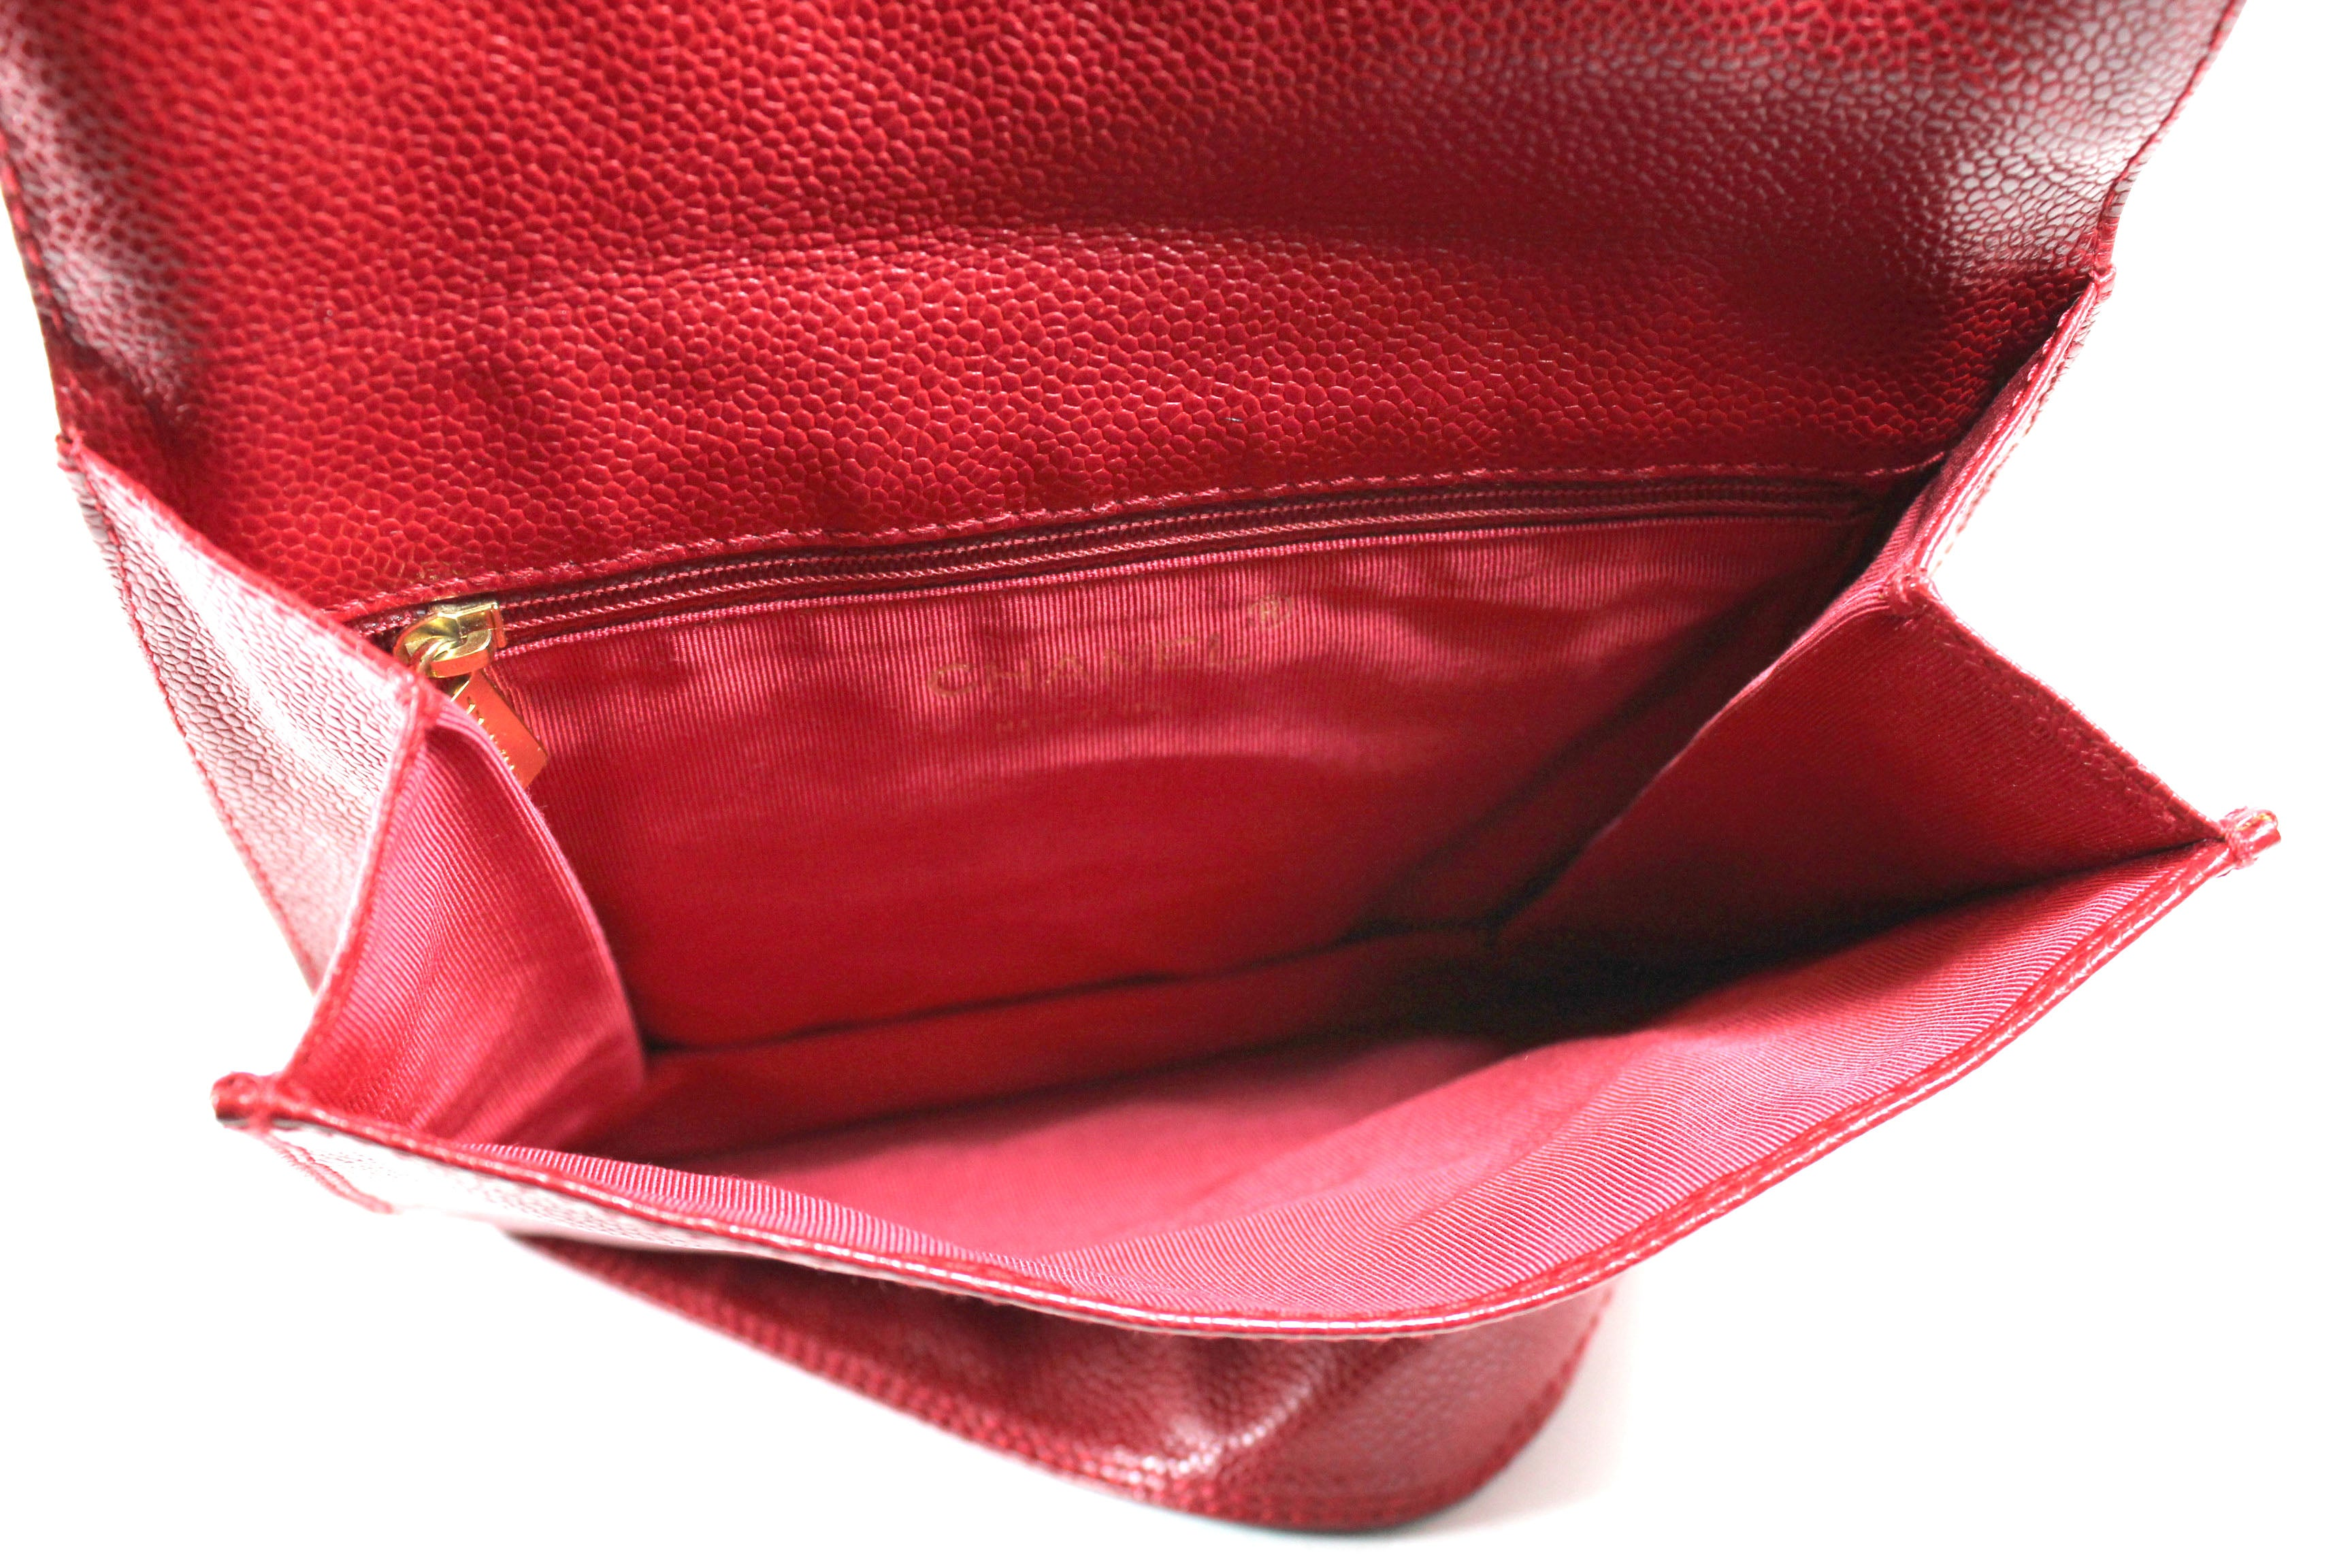 Chanel Vintage Cherry Red Caviar Leather Mini Messenger Bag